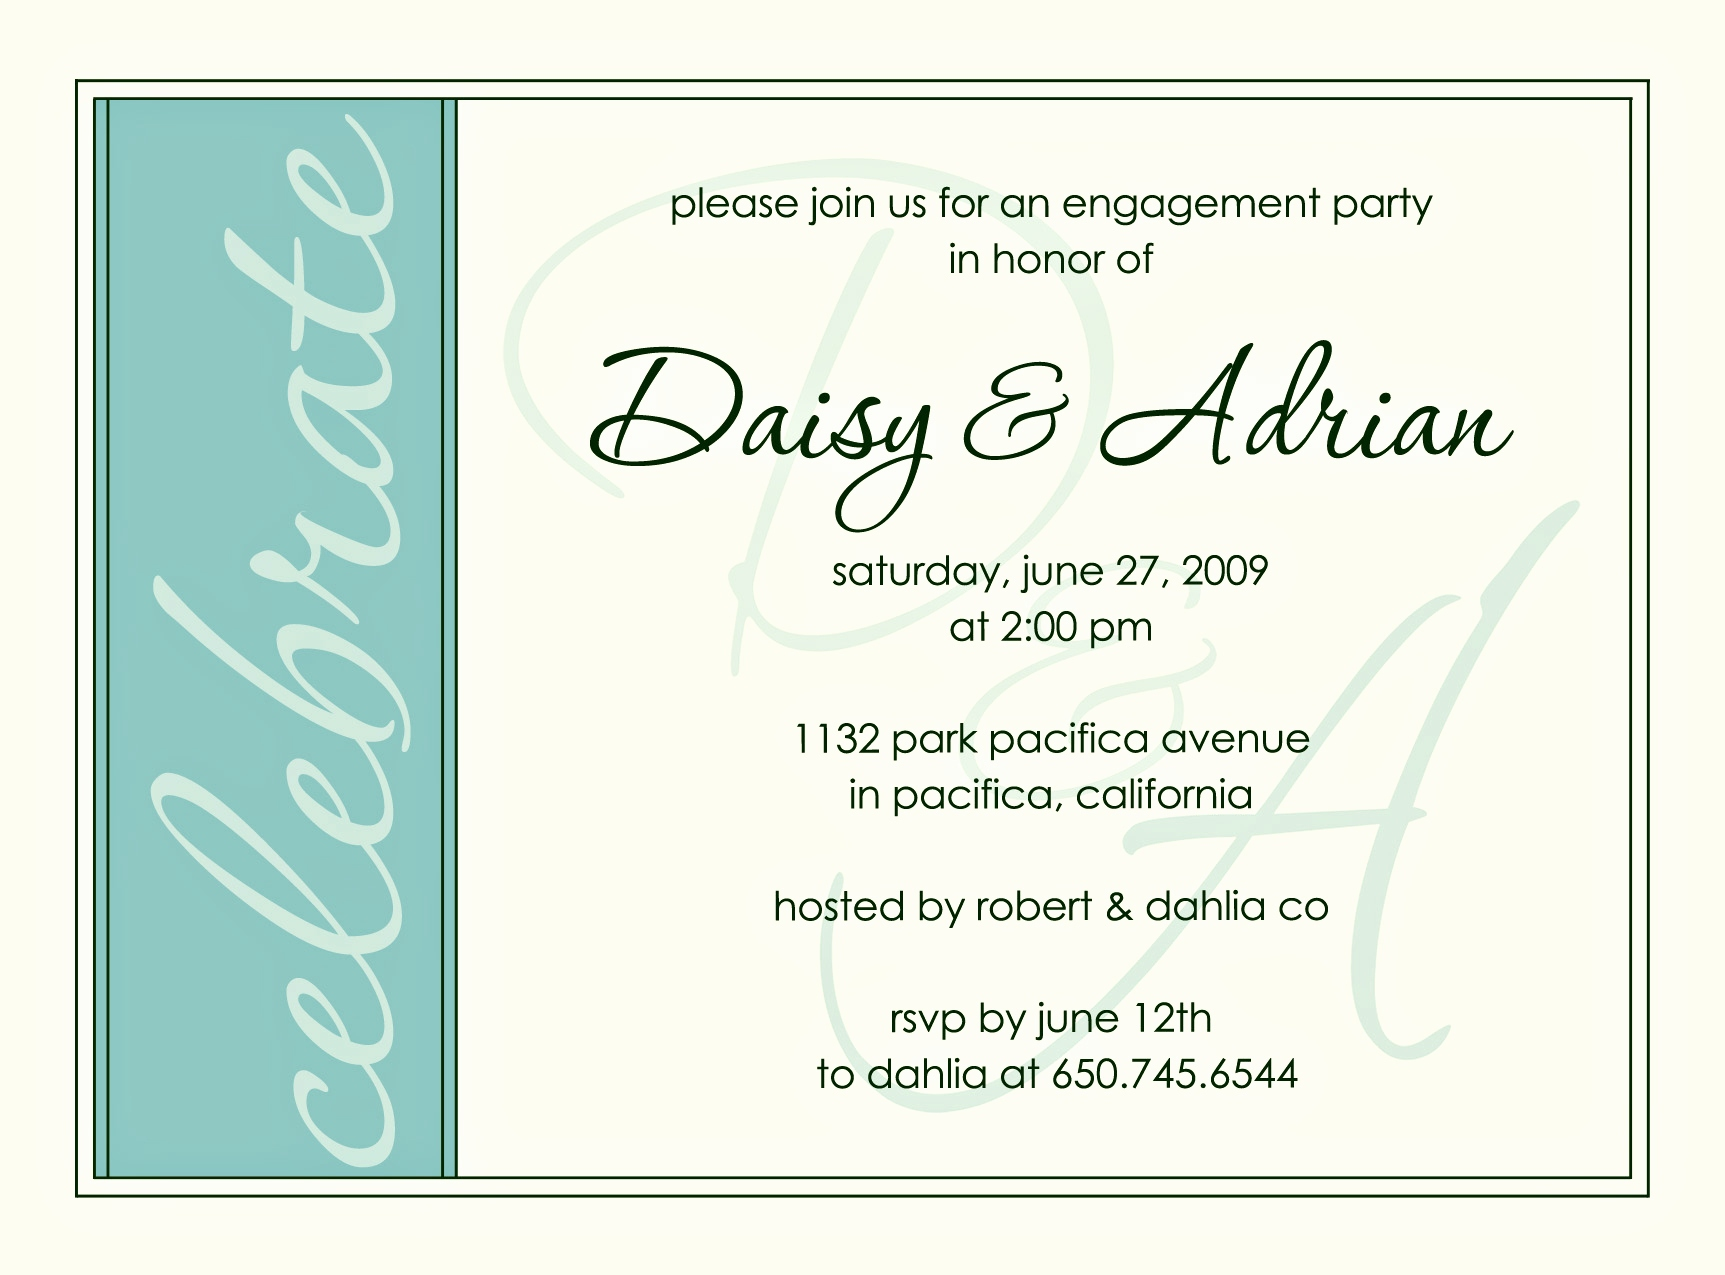 funny birthday party invitation quotes ; 70th-birthday-invitation-wording-beautiful-funny-birthday-party-invitation-quotes-beautiful-funny-anniversary-of-70th-birthday-invitation-wording